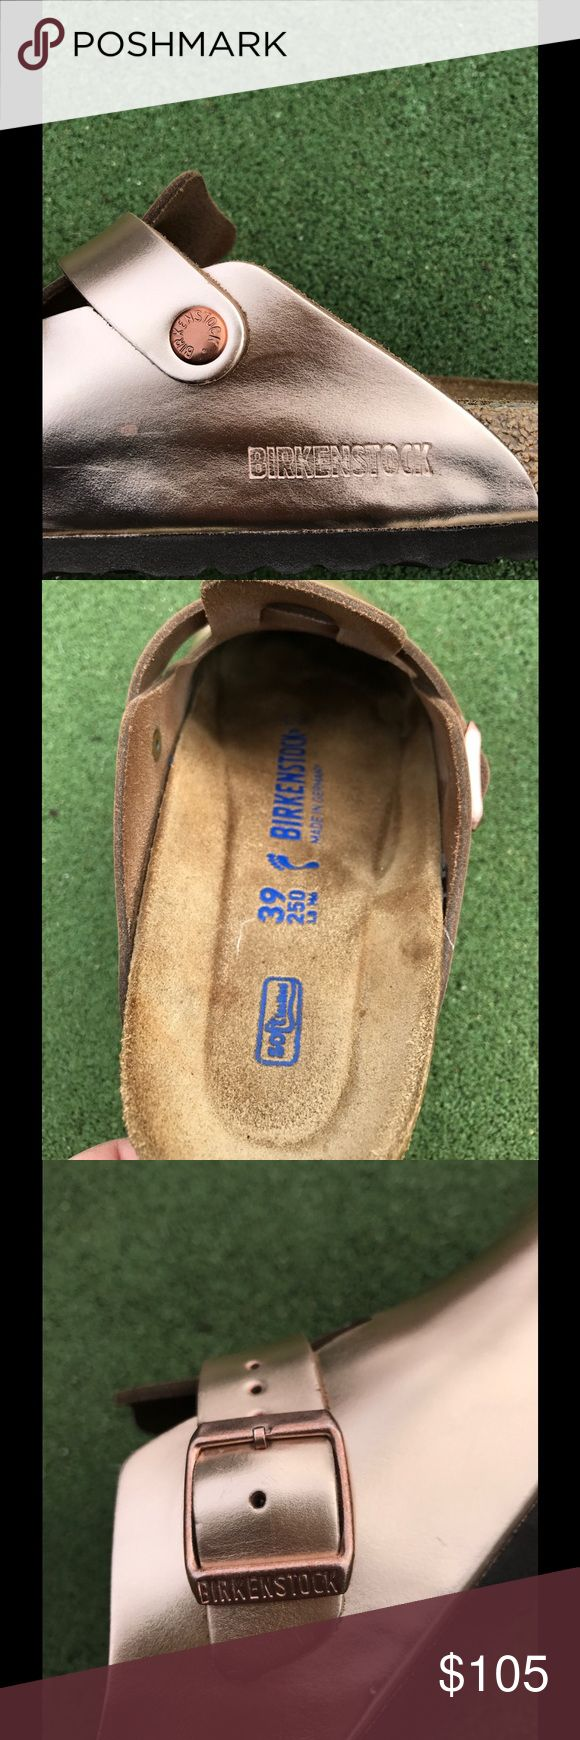 Birkenstock Boston Metallic Copper 39 Birkenstock LEATHER Boston Soft Footbed Metallic Copper Size 39 N (Ladies 8-8.5).   No box.  Only worn a few times around the house.  Soles and cork in like new condition.  Slight scratches on uppers that are visible in pictures.   Smoke free home.  No trades.  To learn more about Birkenstocks and sizing visit my blog www.ilovebirkenstocks.com. Birkenstock Shoes